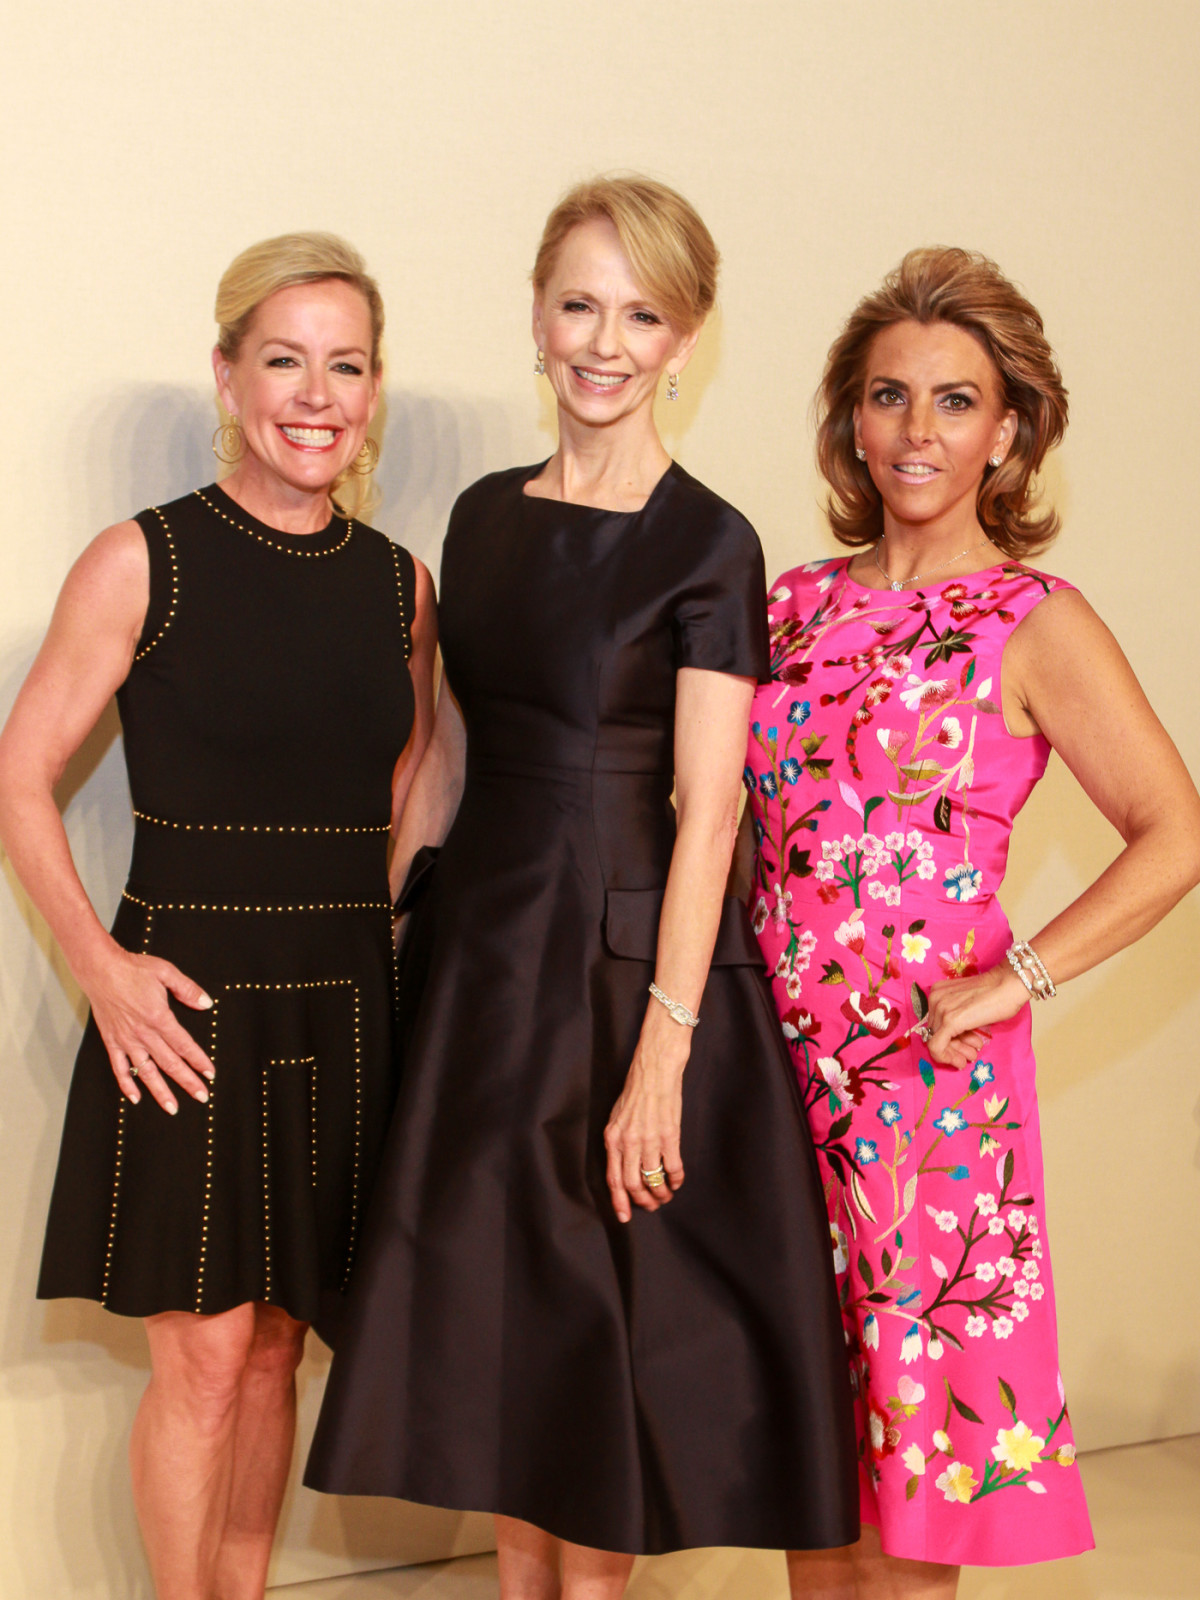 Best Dressed Luncheon, March 2016, Rosemary Schatzman, Susan Sarofim, Mary Tere Perusquia